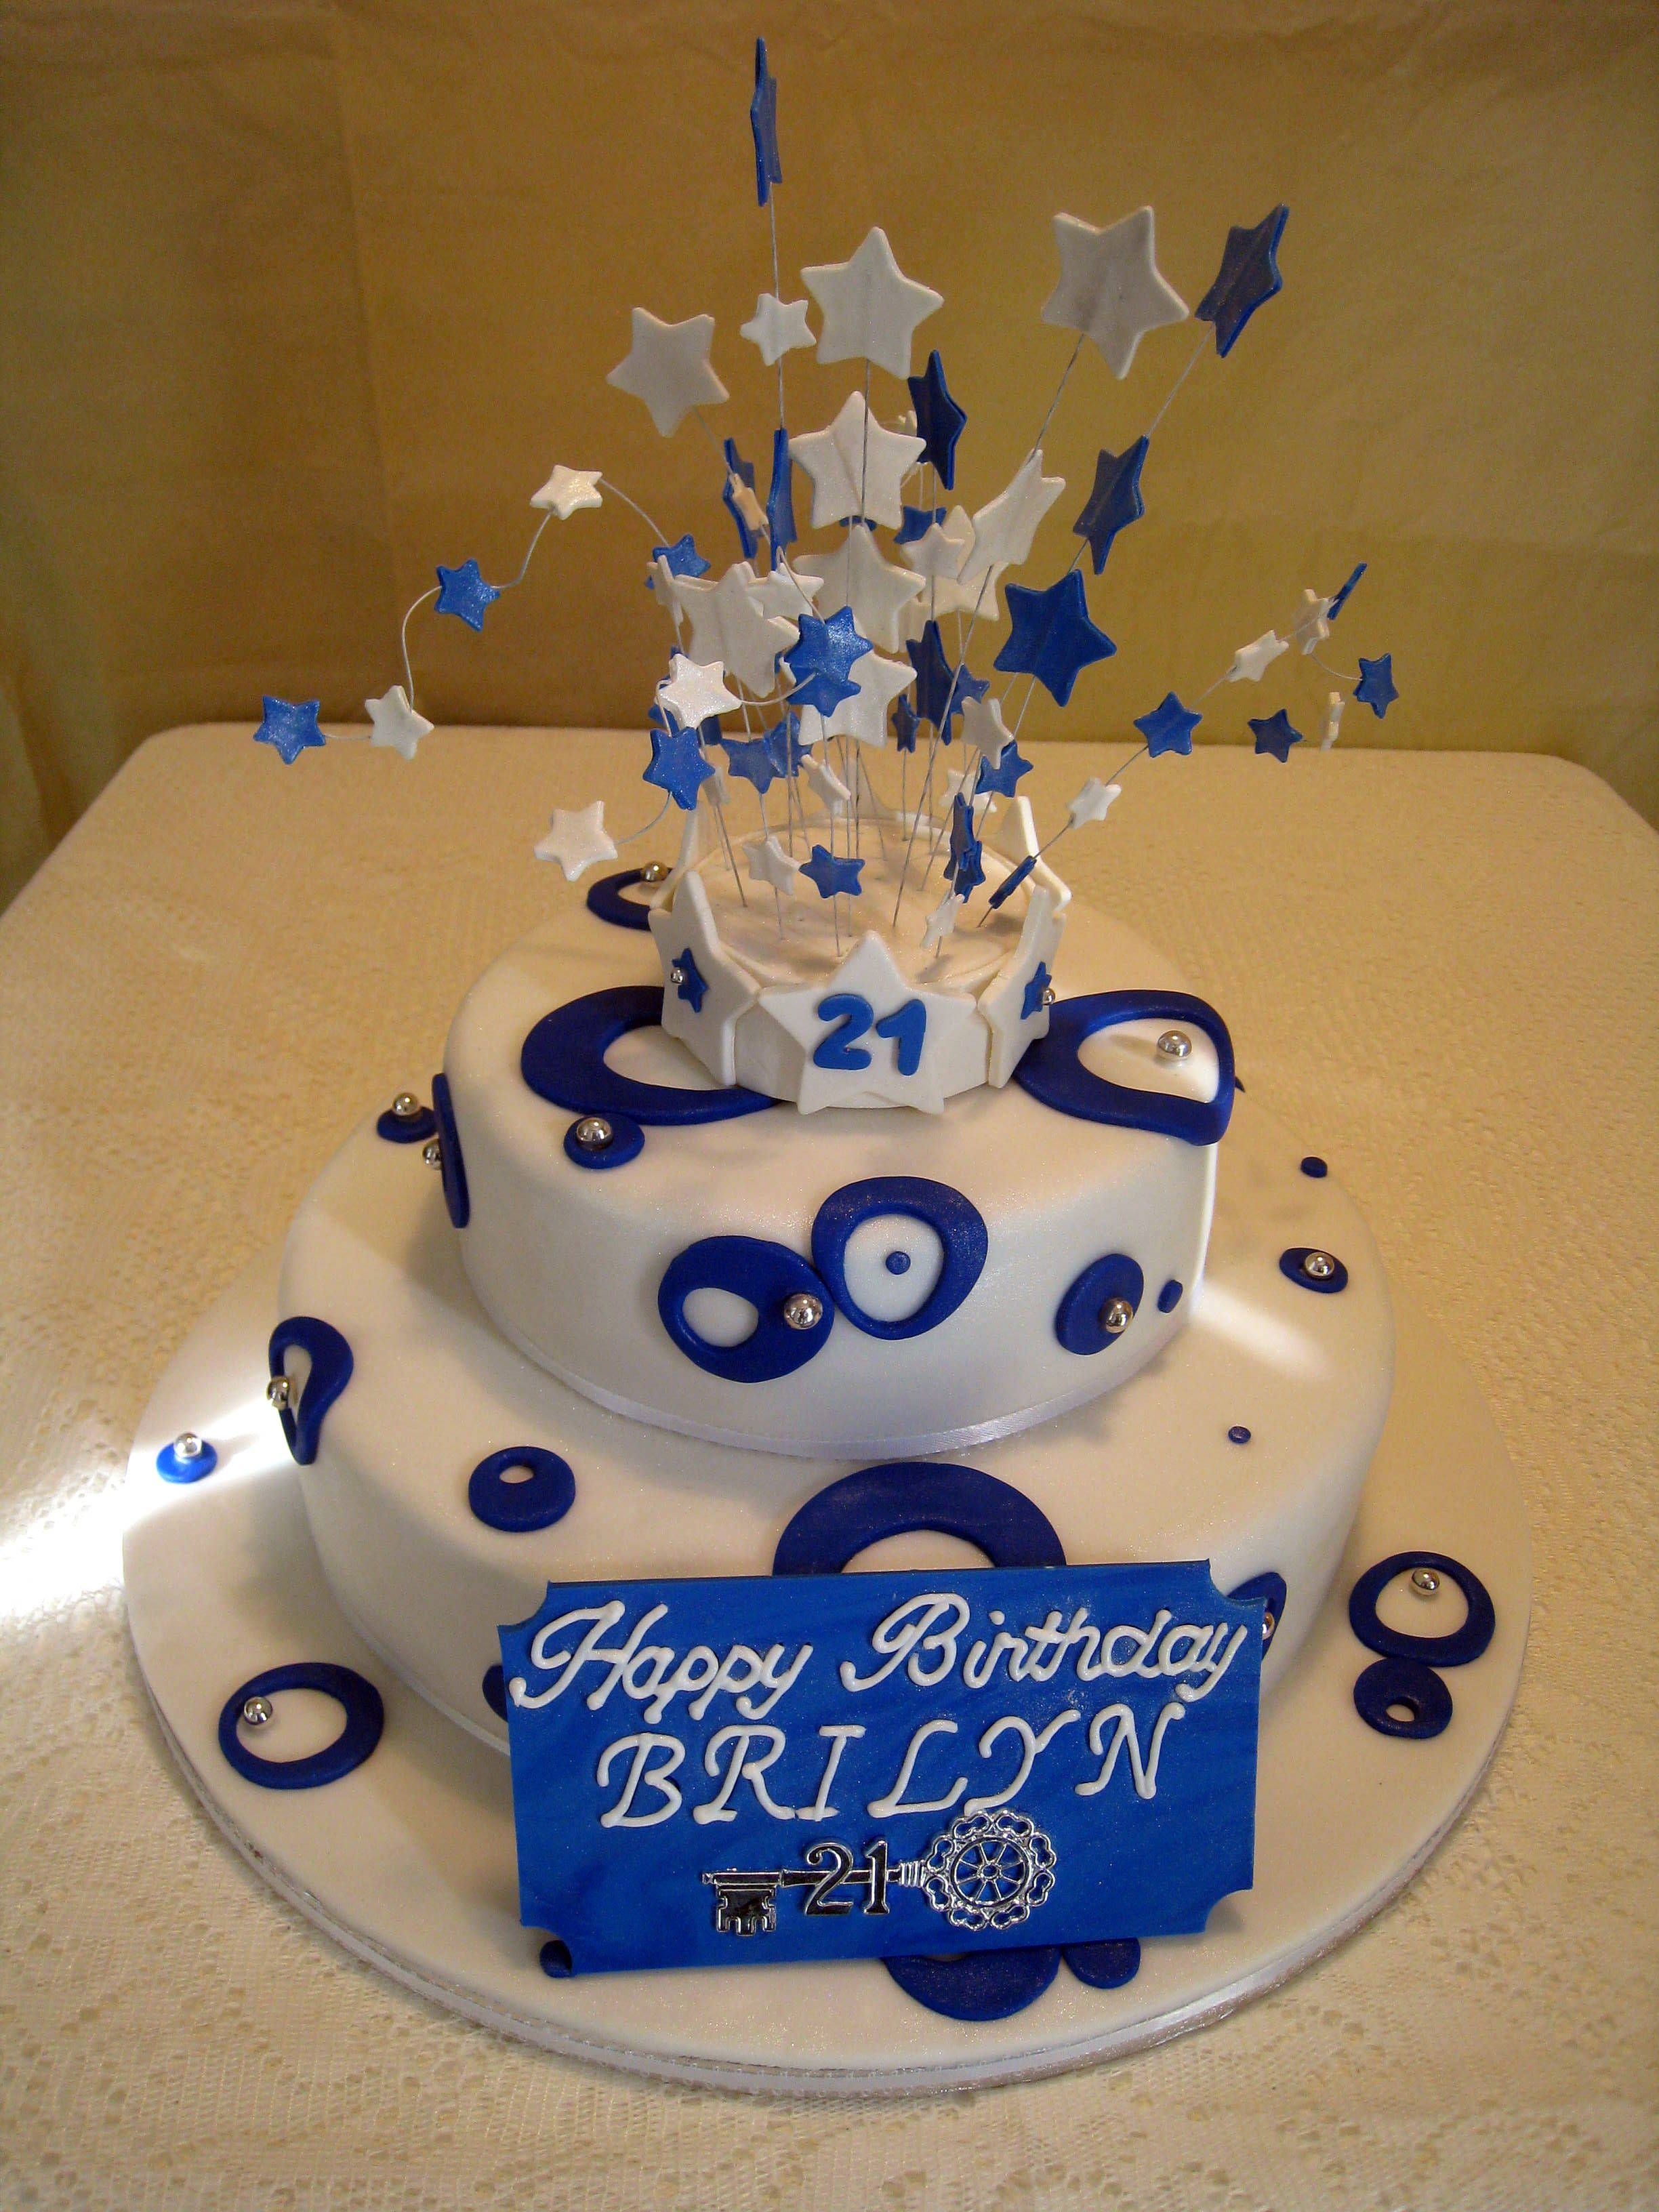 Cake Decoration For Him : cakes, 21st birthday cakes , novelty birthday cakes ...